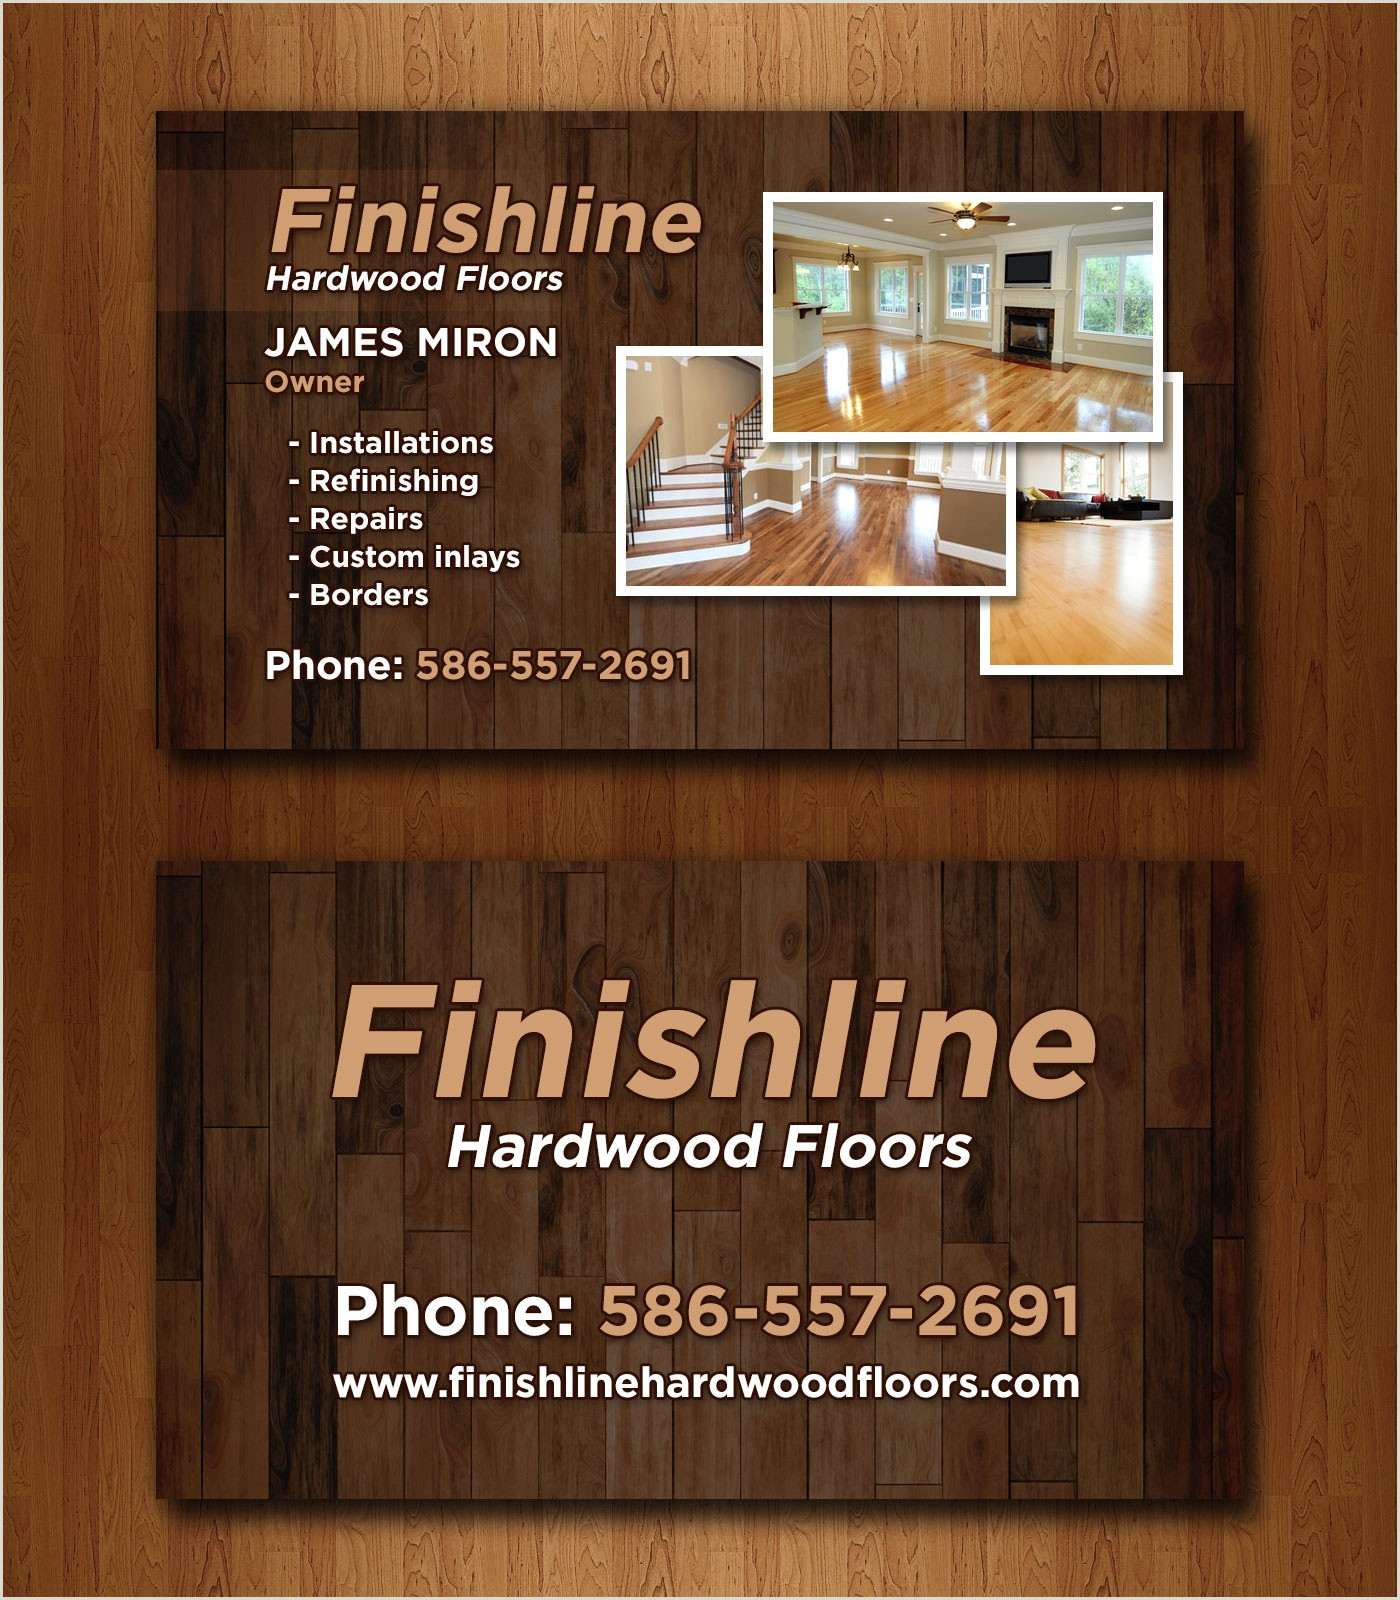 Make Your Own Business Card Template 14 Popular Hardwood Flooring Business Card Template